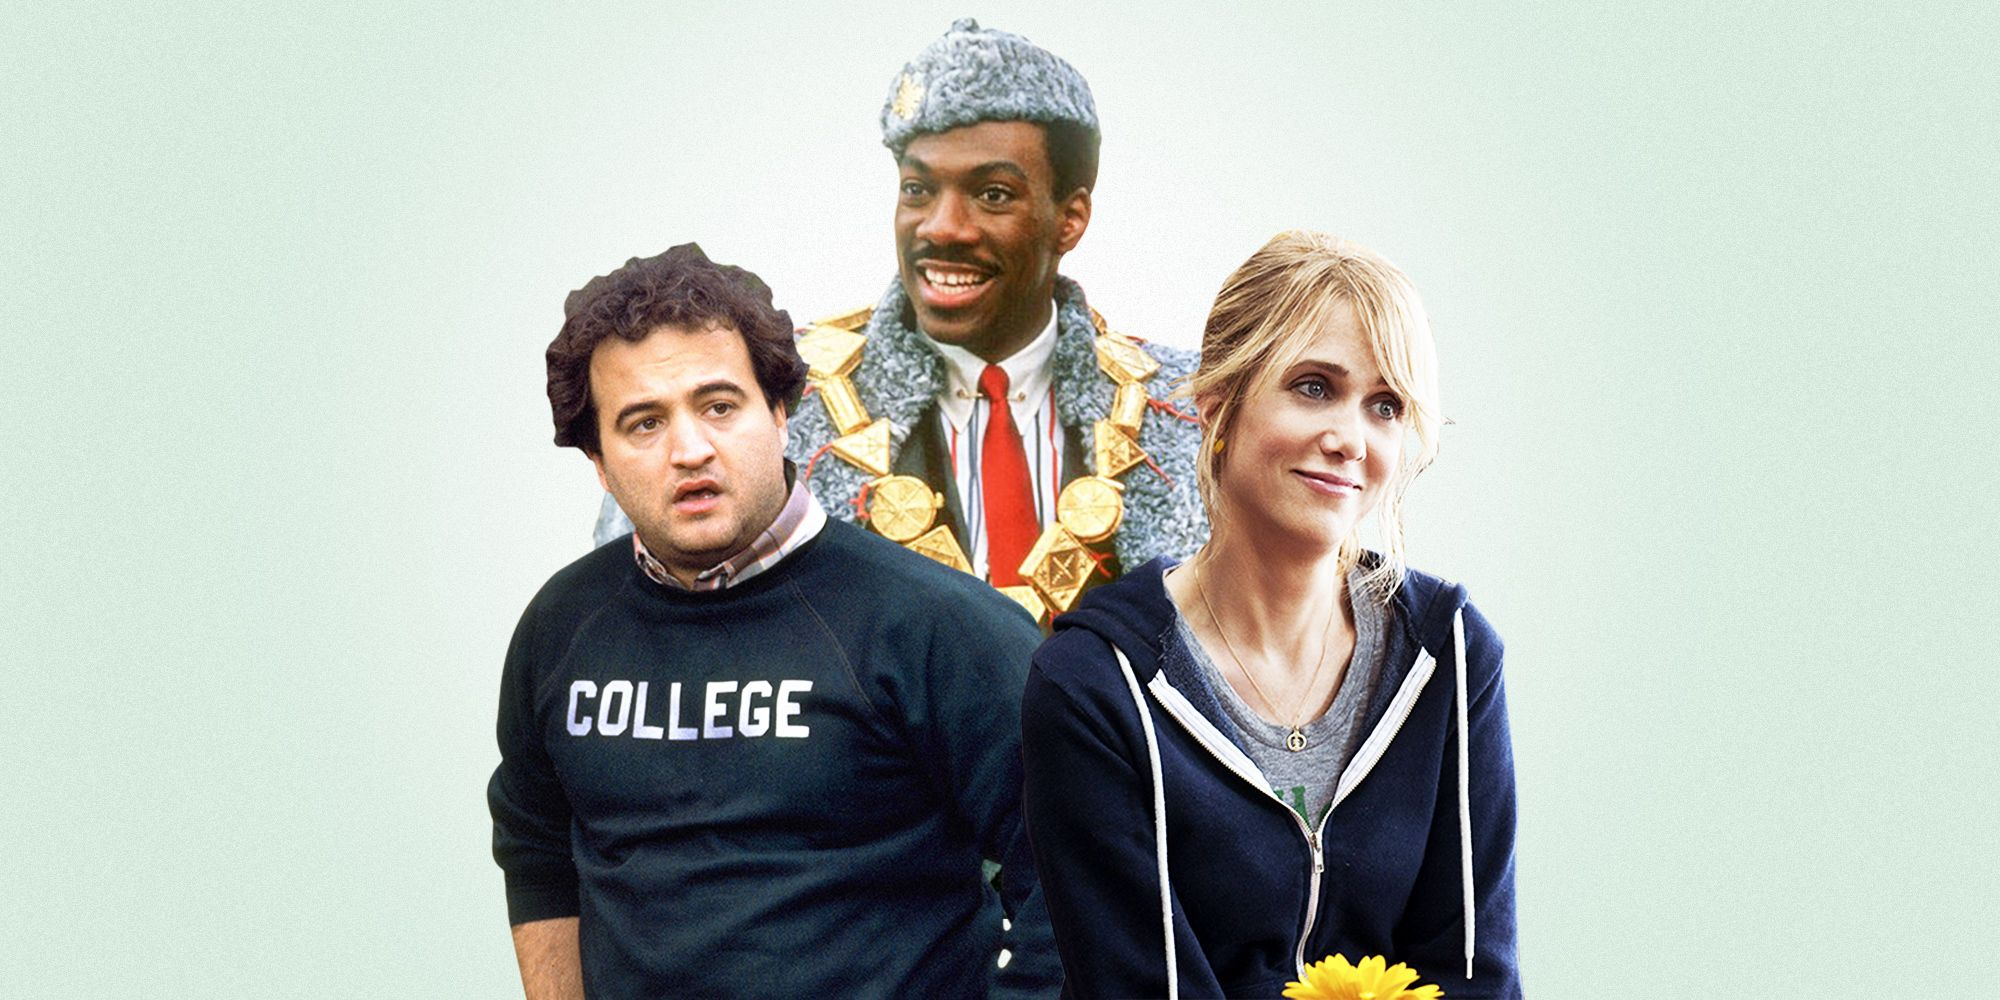 30 Best Comedies of All Time - Best Comedy Movies to Stream